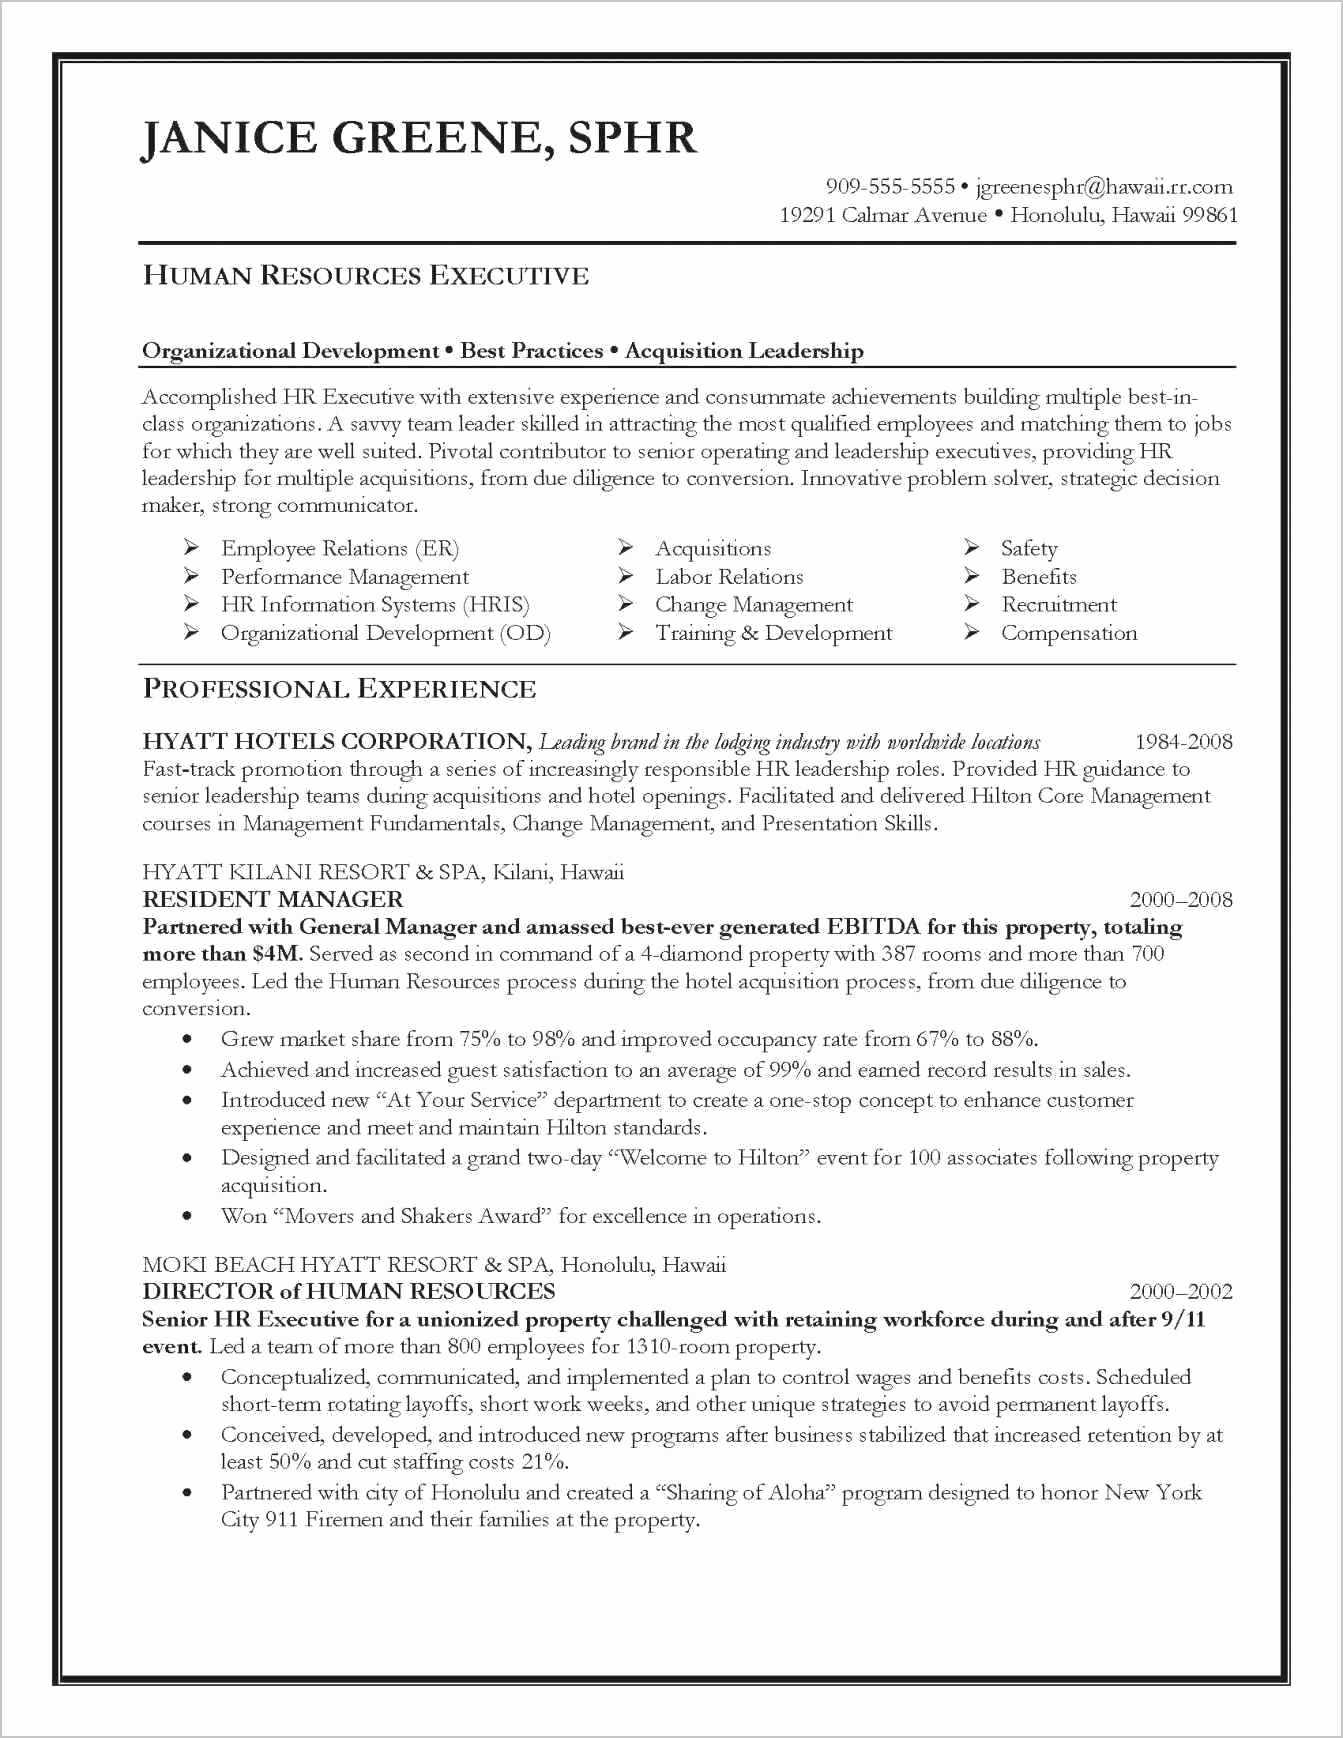 Substitute Teacher Job Description for Resume - Elegant Substitute Teacher Job Description for Resume